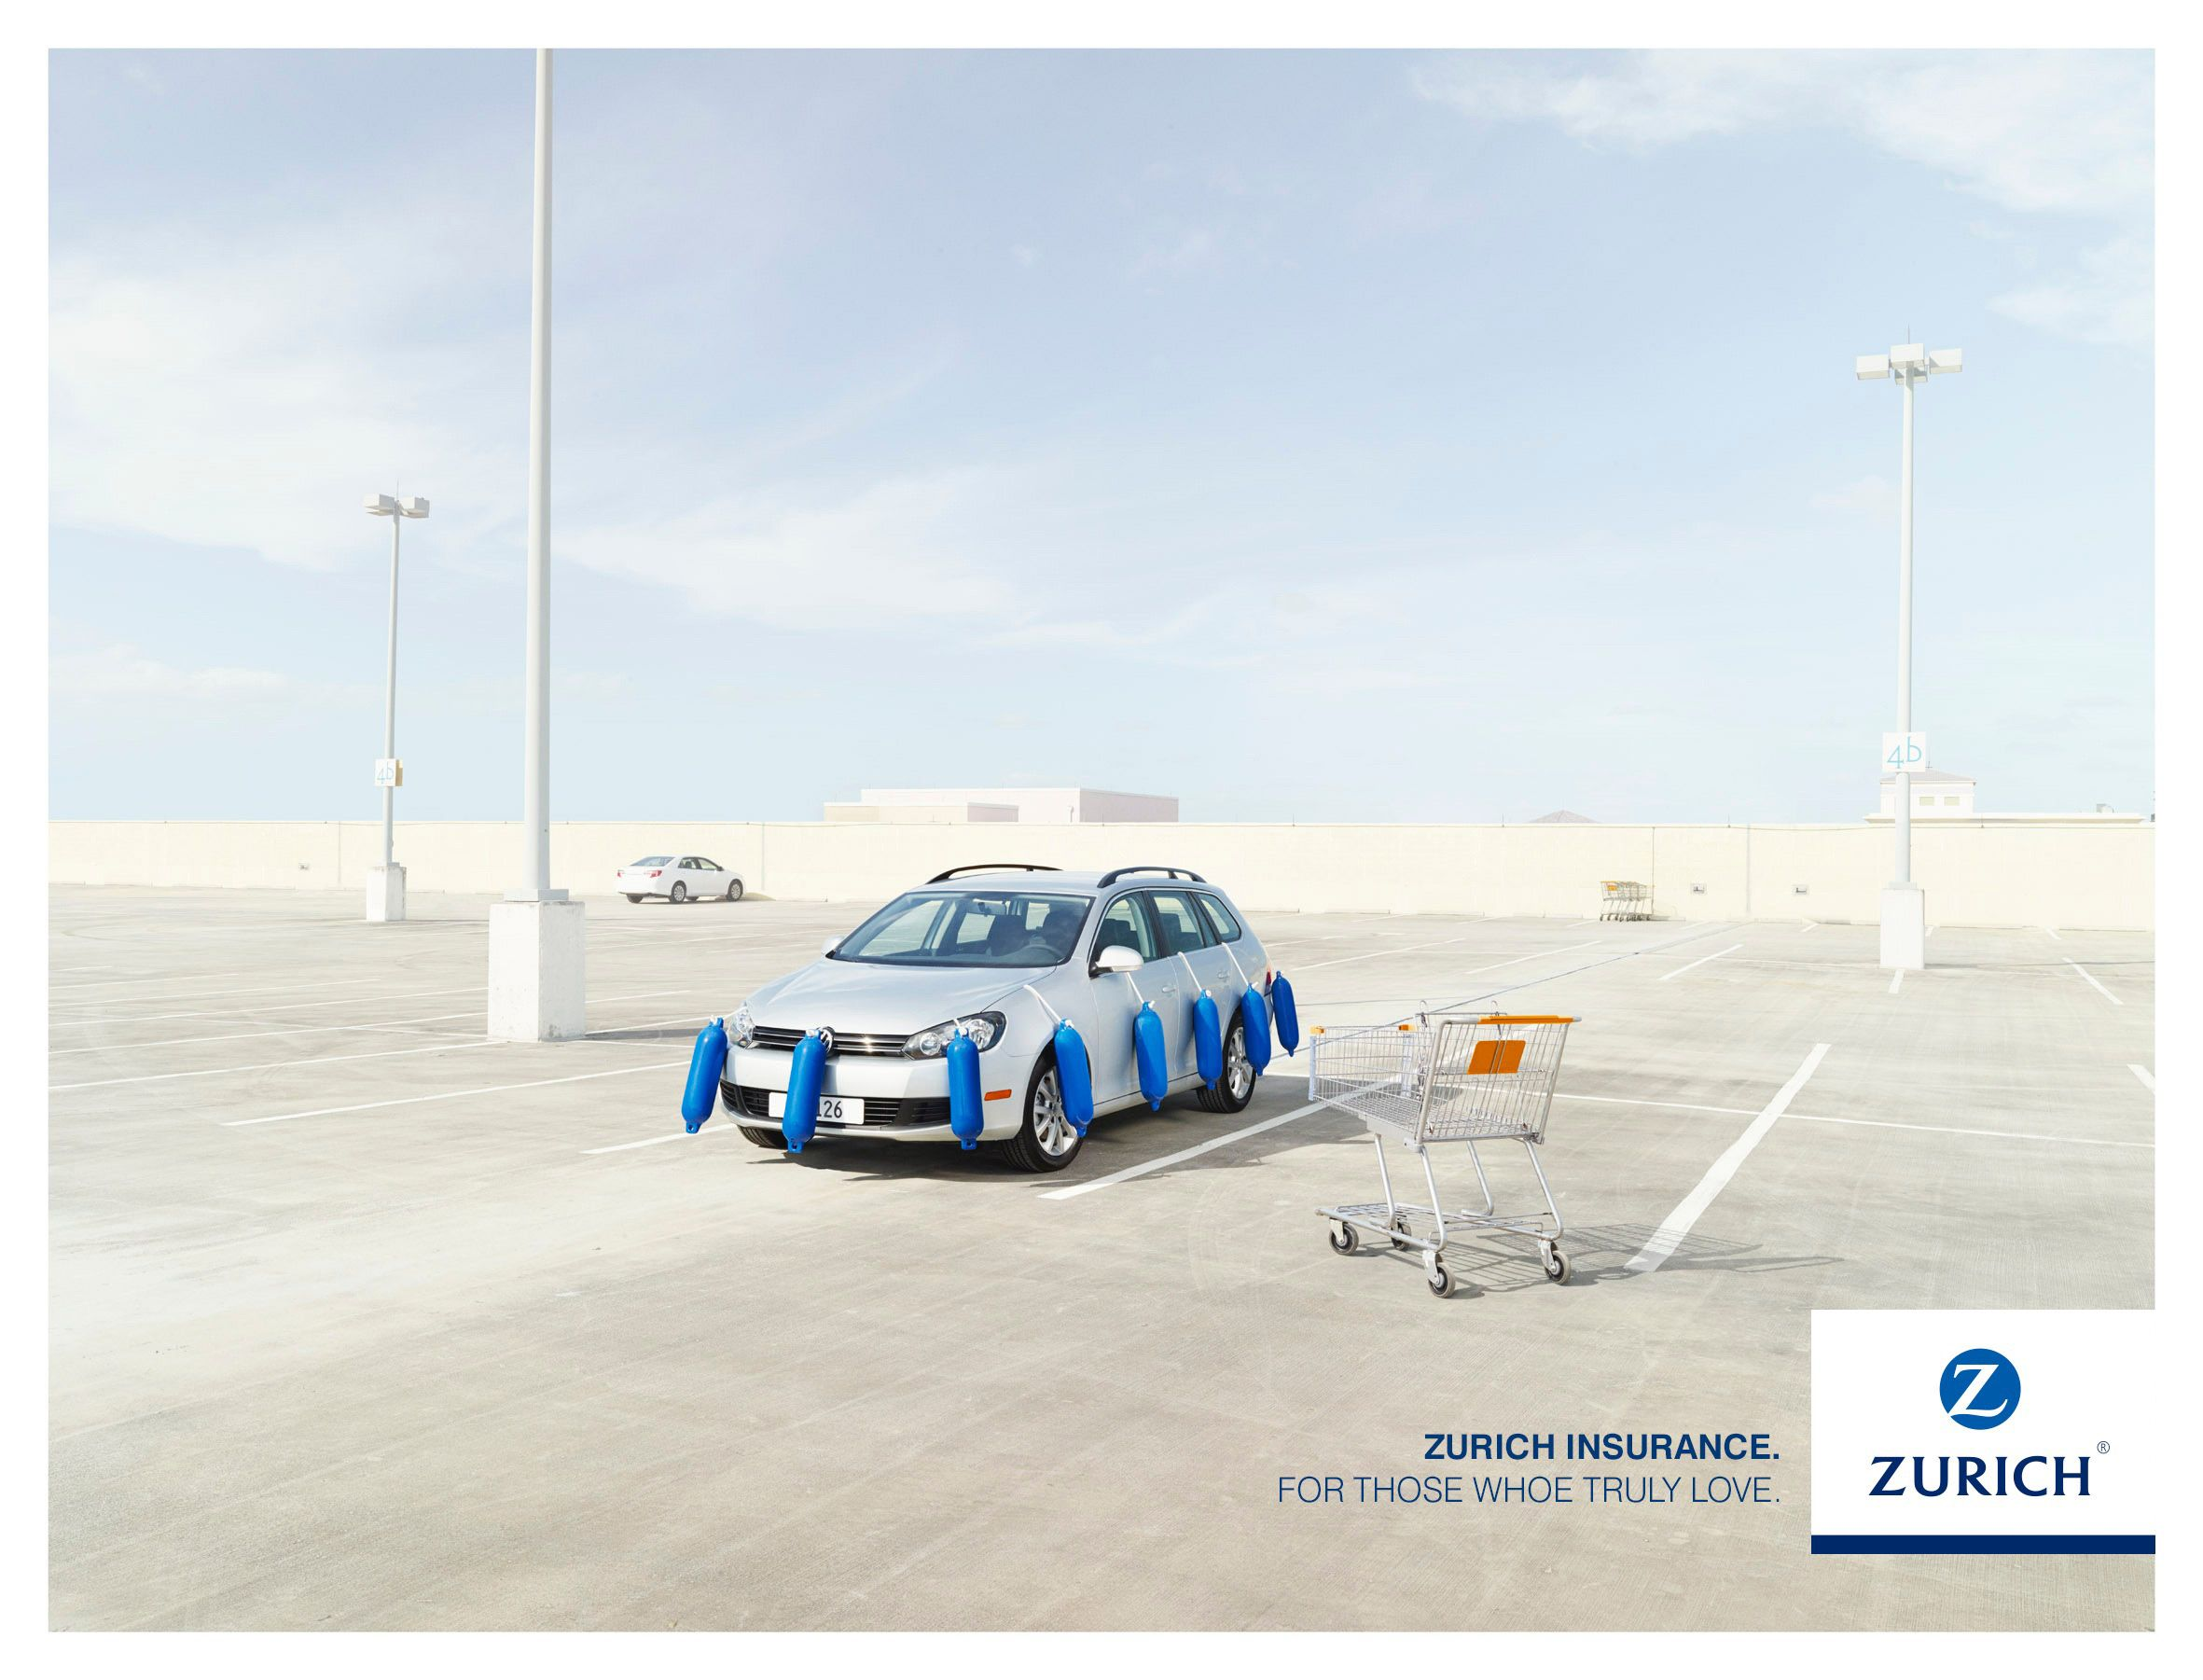 Adeevee Zurich Insurance Trolley With Images Zurich Car